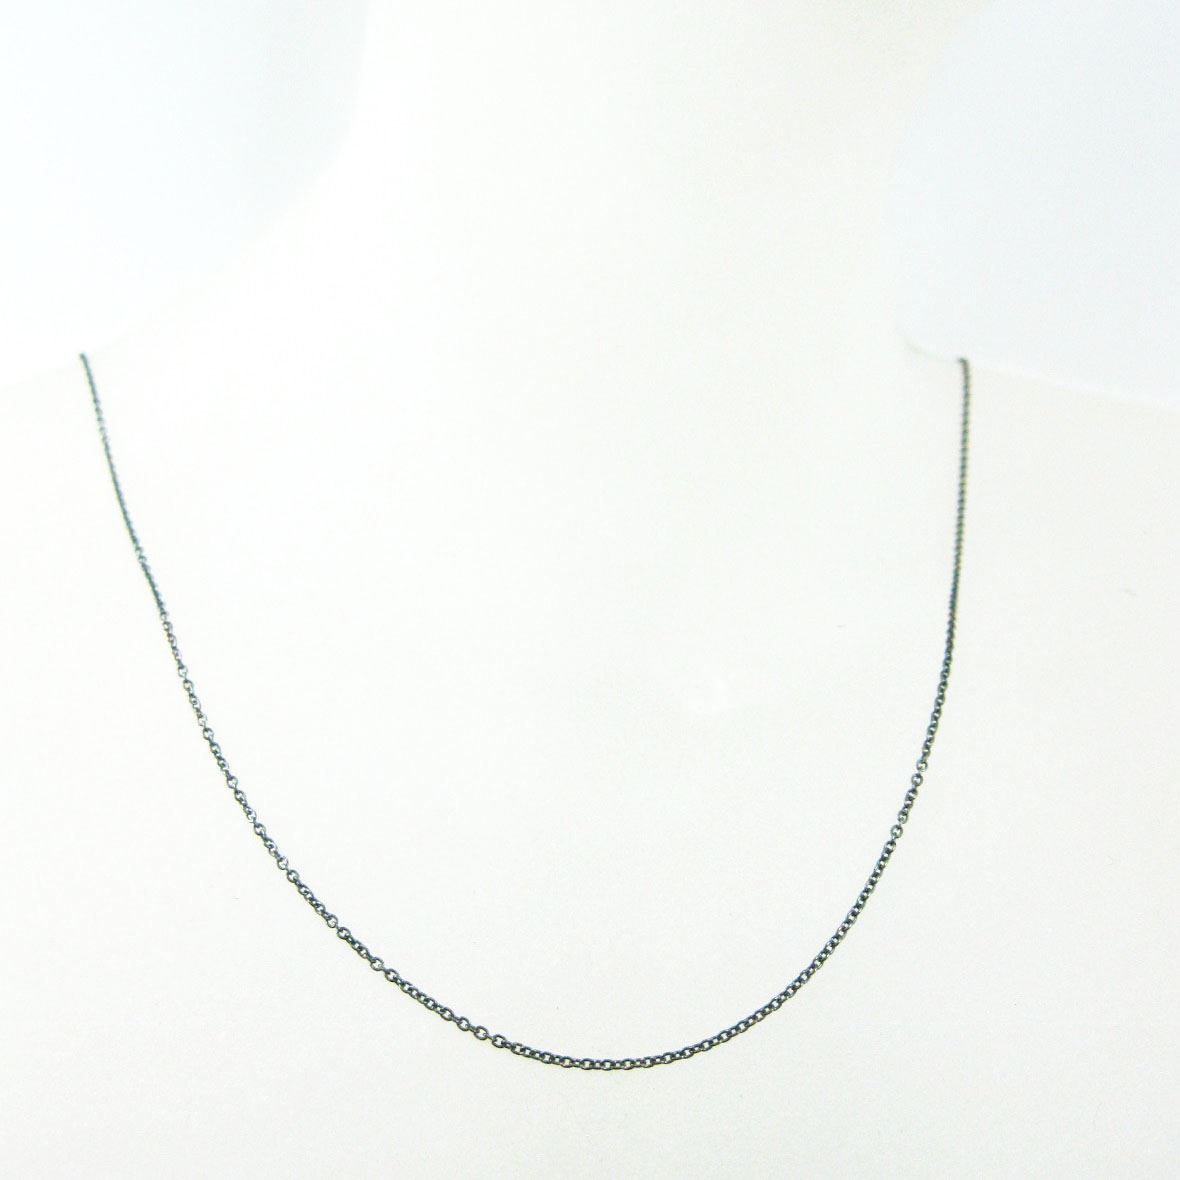 Oxidized Sterling Silver Necklace Chain - Bracelet Chain - Anklet Chain - Tiny Plain Cable Oval - Long Necklace -All Sizes